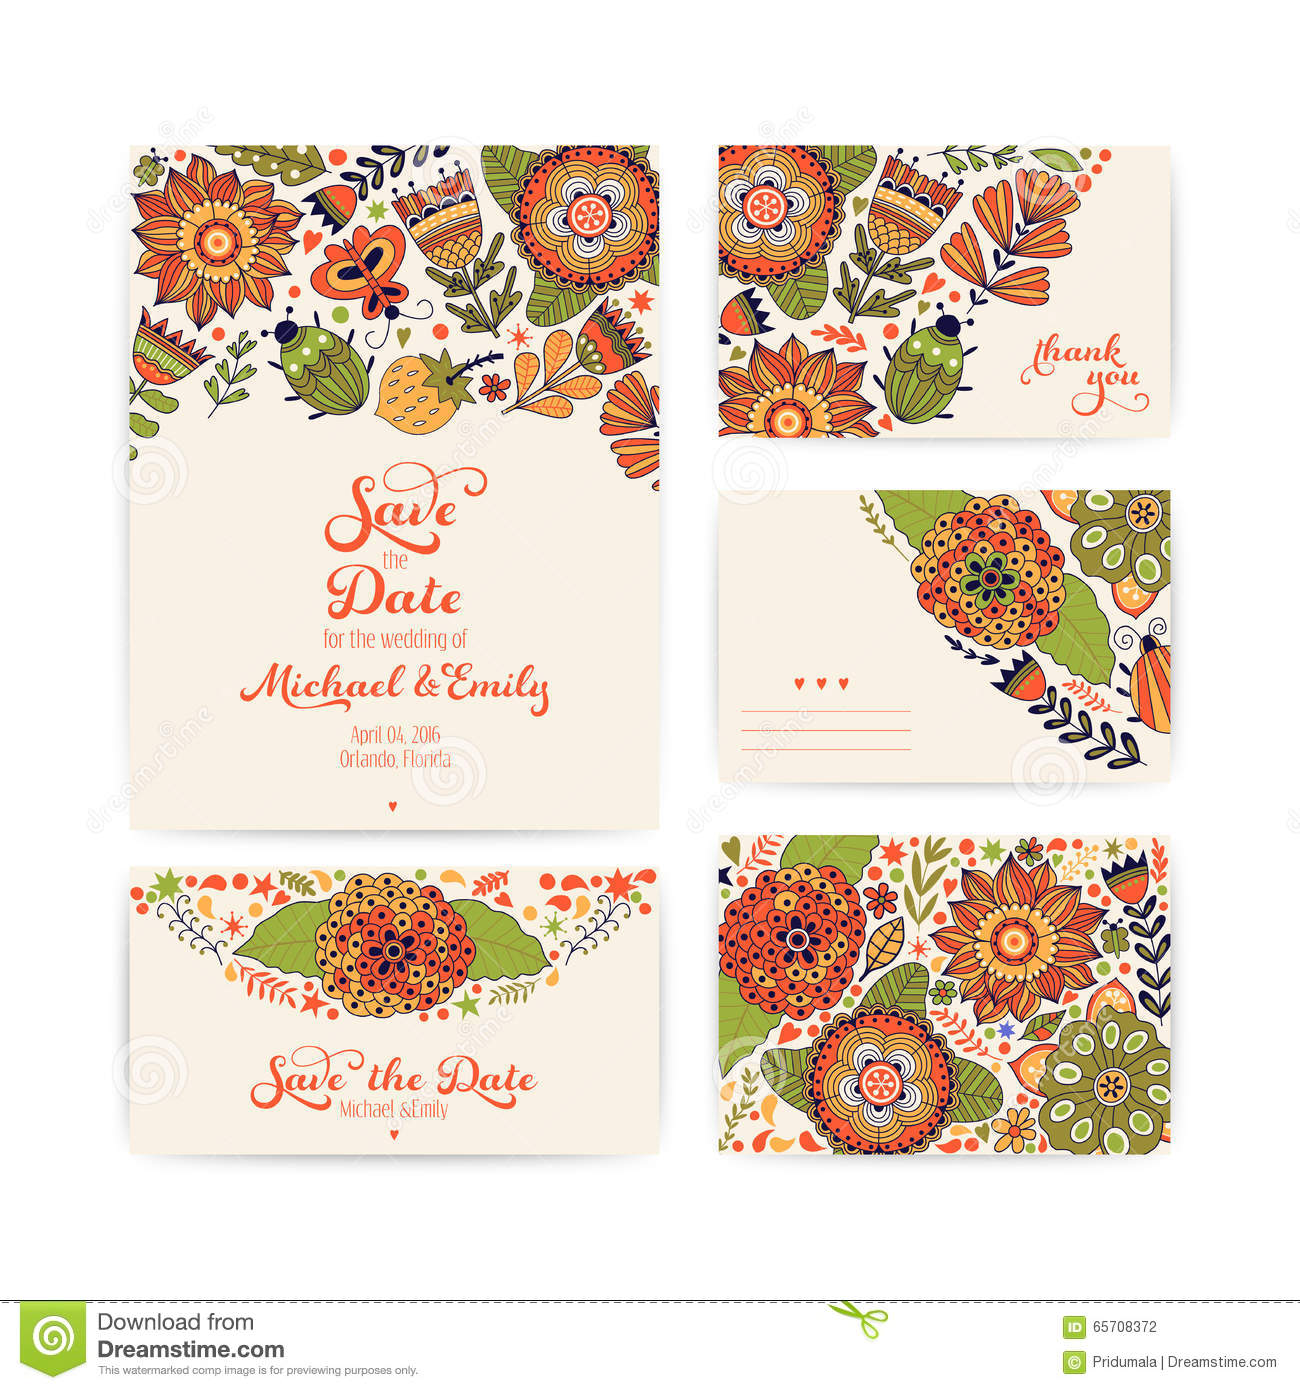 Wedding Card Envelope Template Peellandfmtk - Wedding place card templates free download